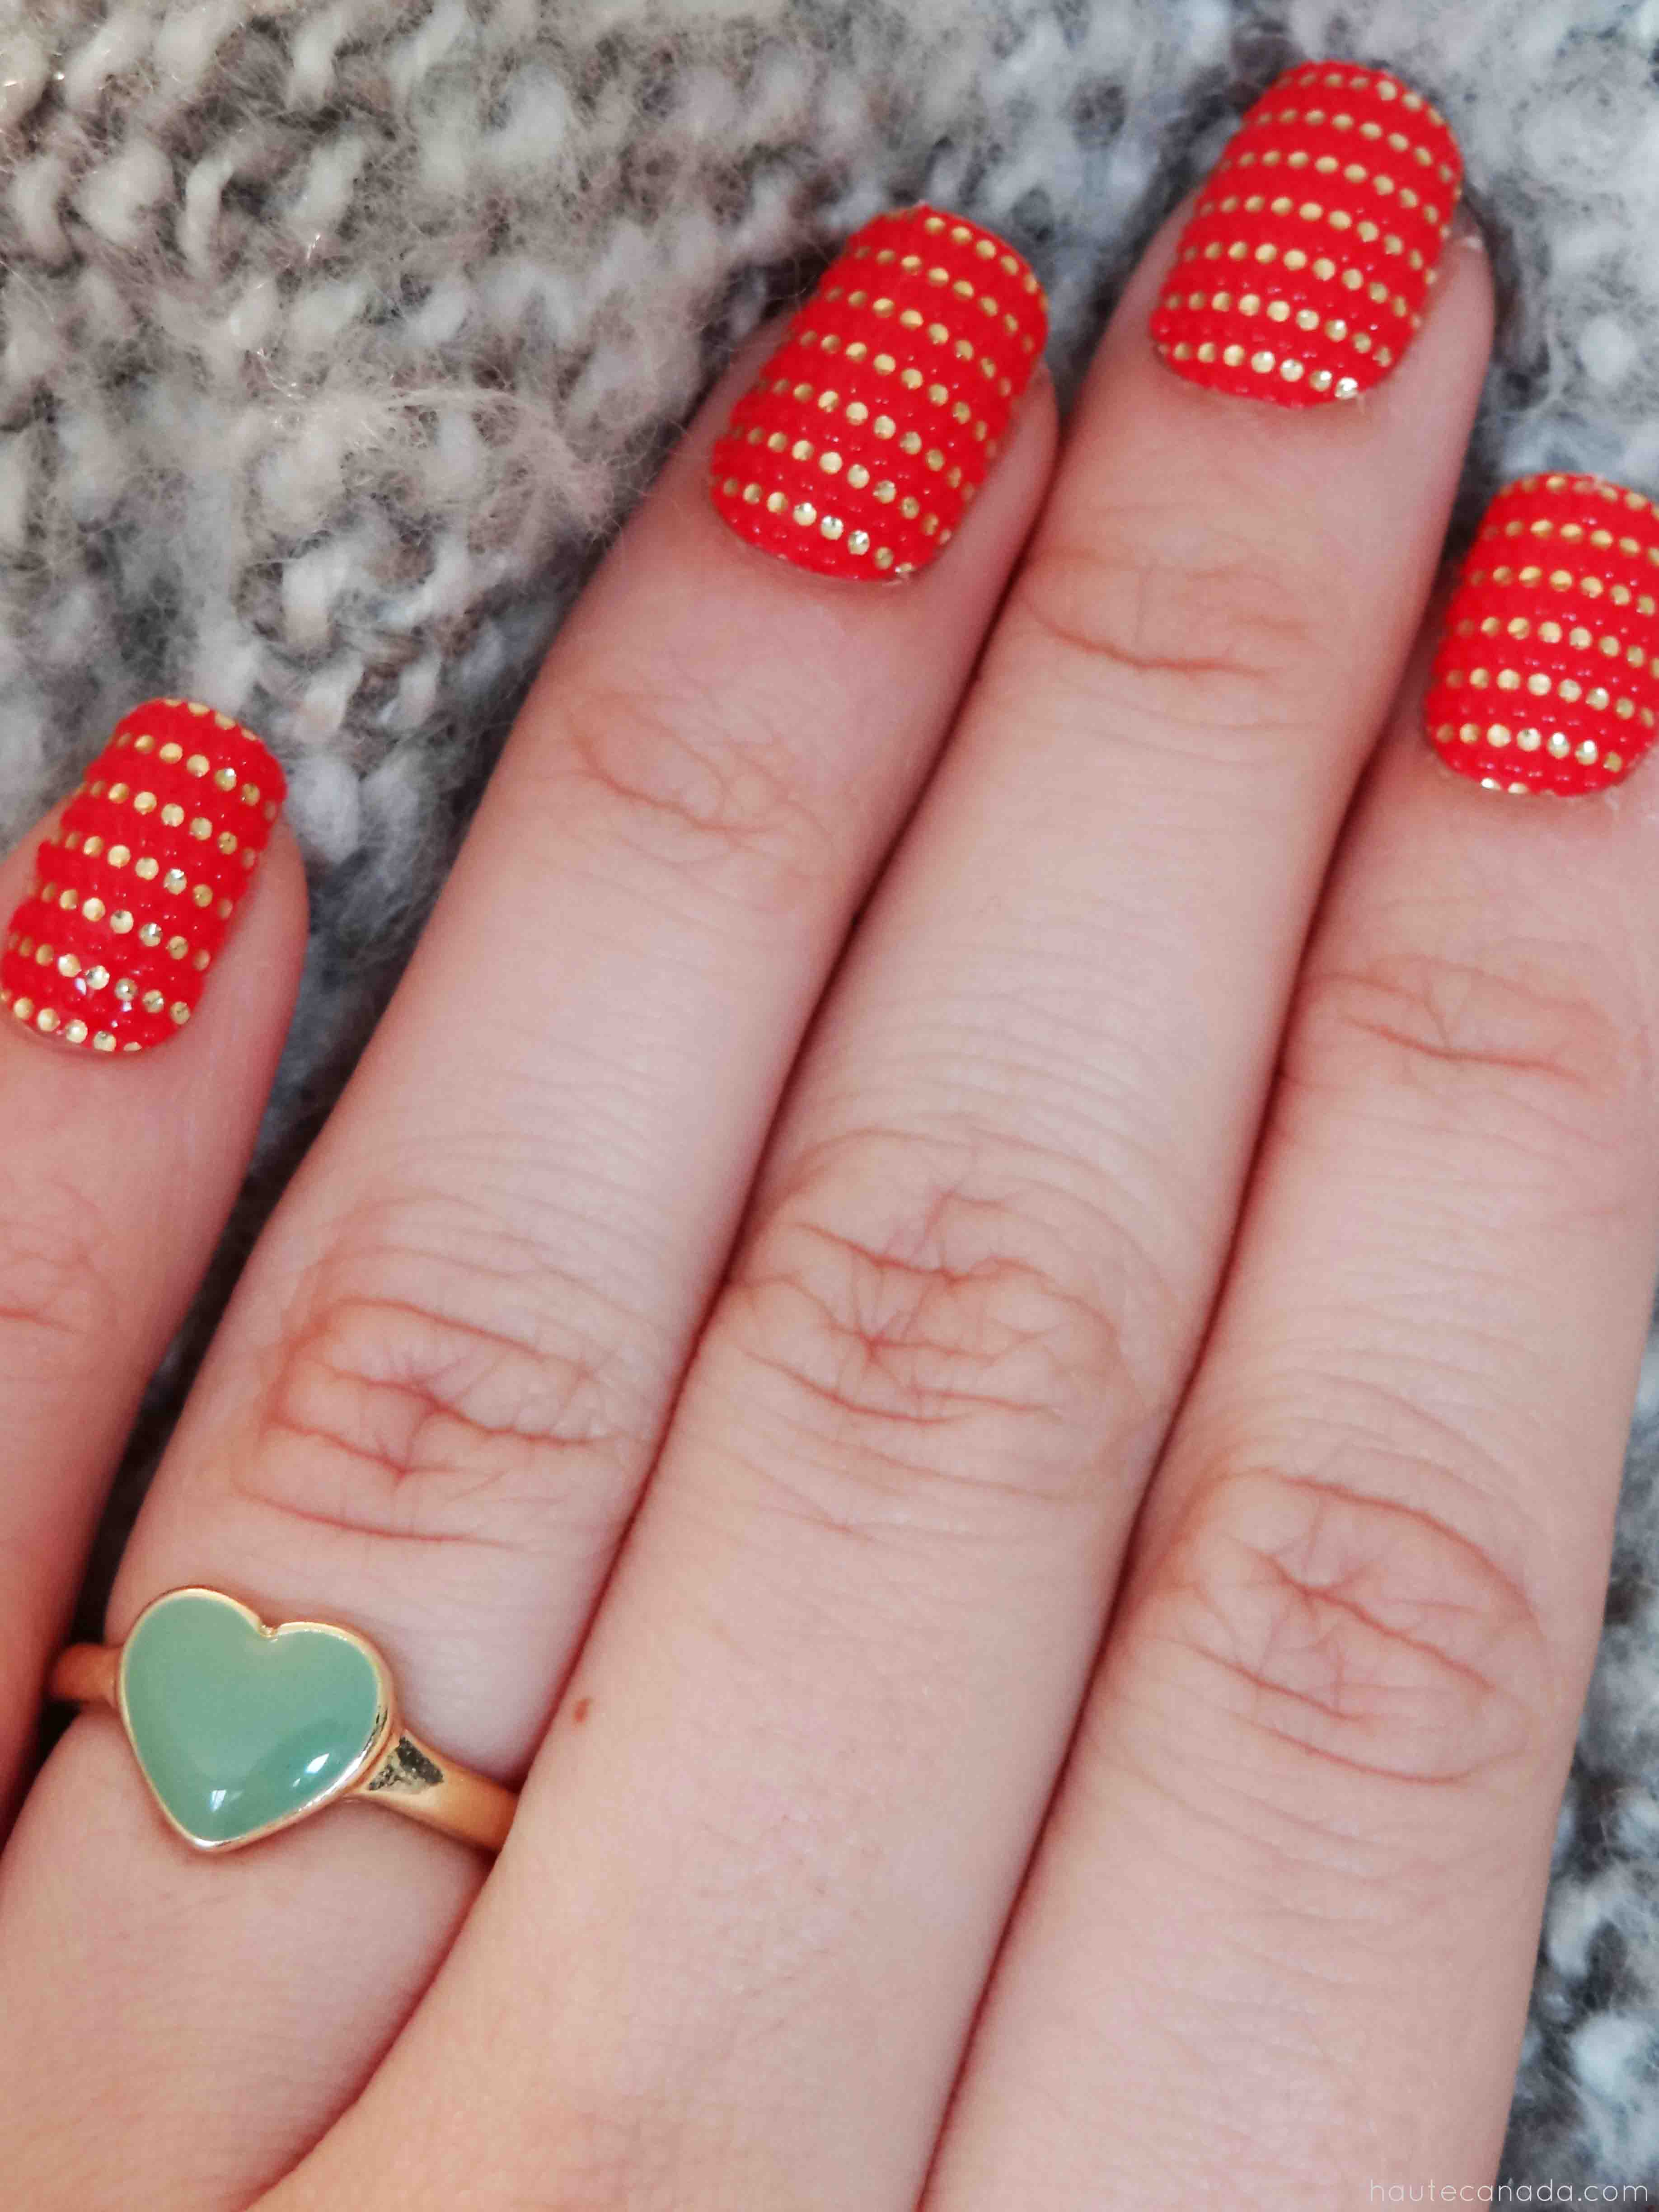 Essie, Nail Art, Beauty, Nail Stickers, Red and Gold Nails, Nail Polish, Beauty Blogger, Toronto Blogs